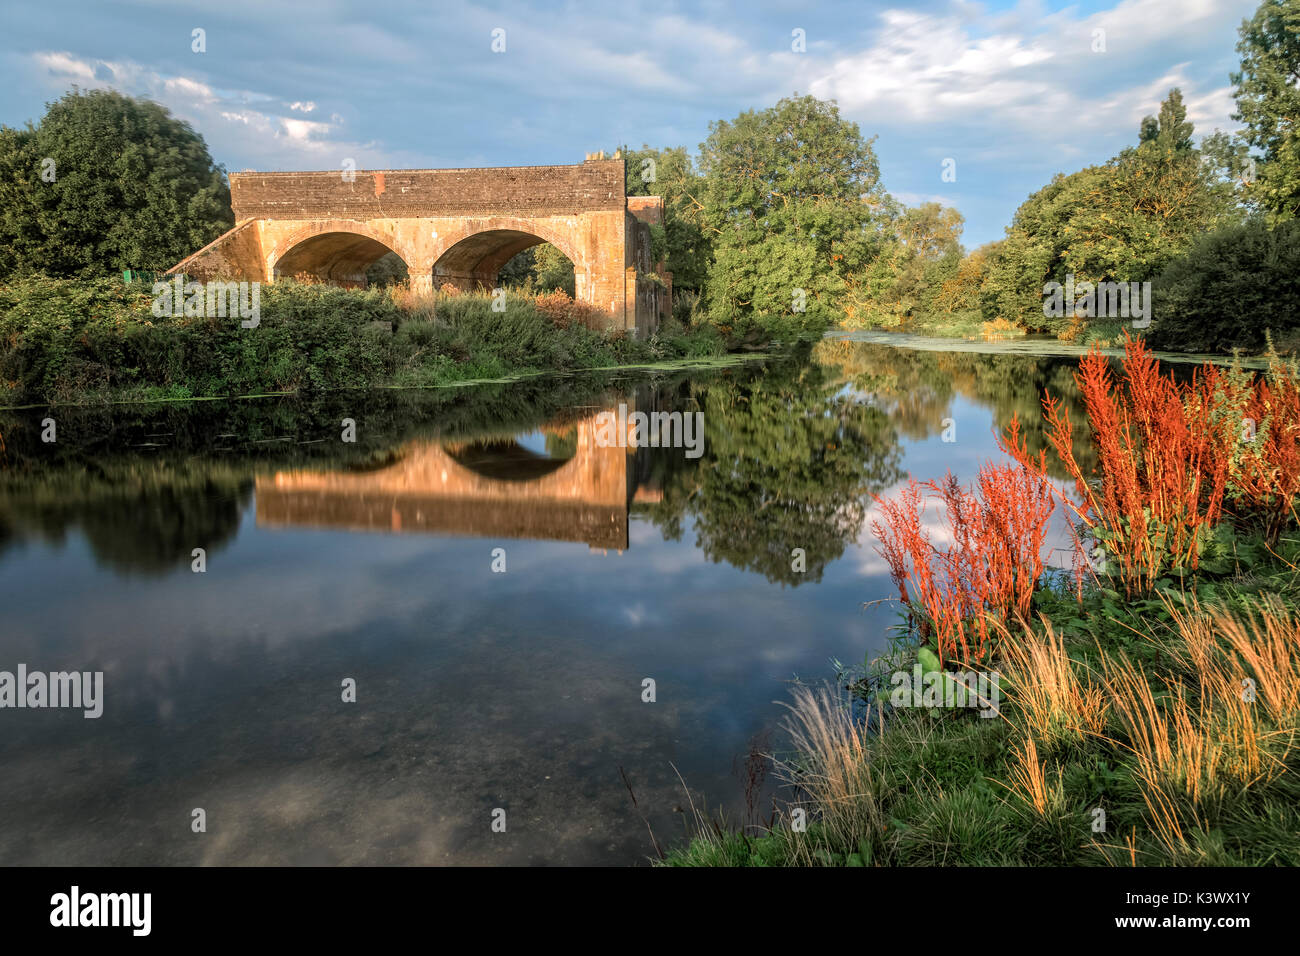 Stour Meadows, Blandford Forum, Dorset, England, UK - Stock Image